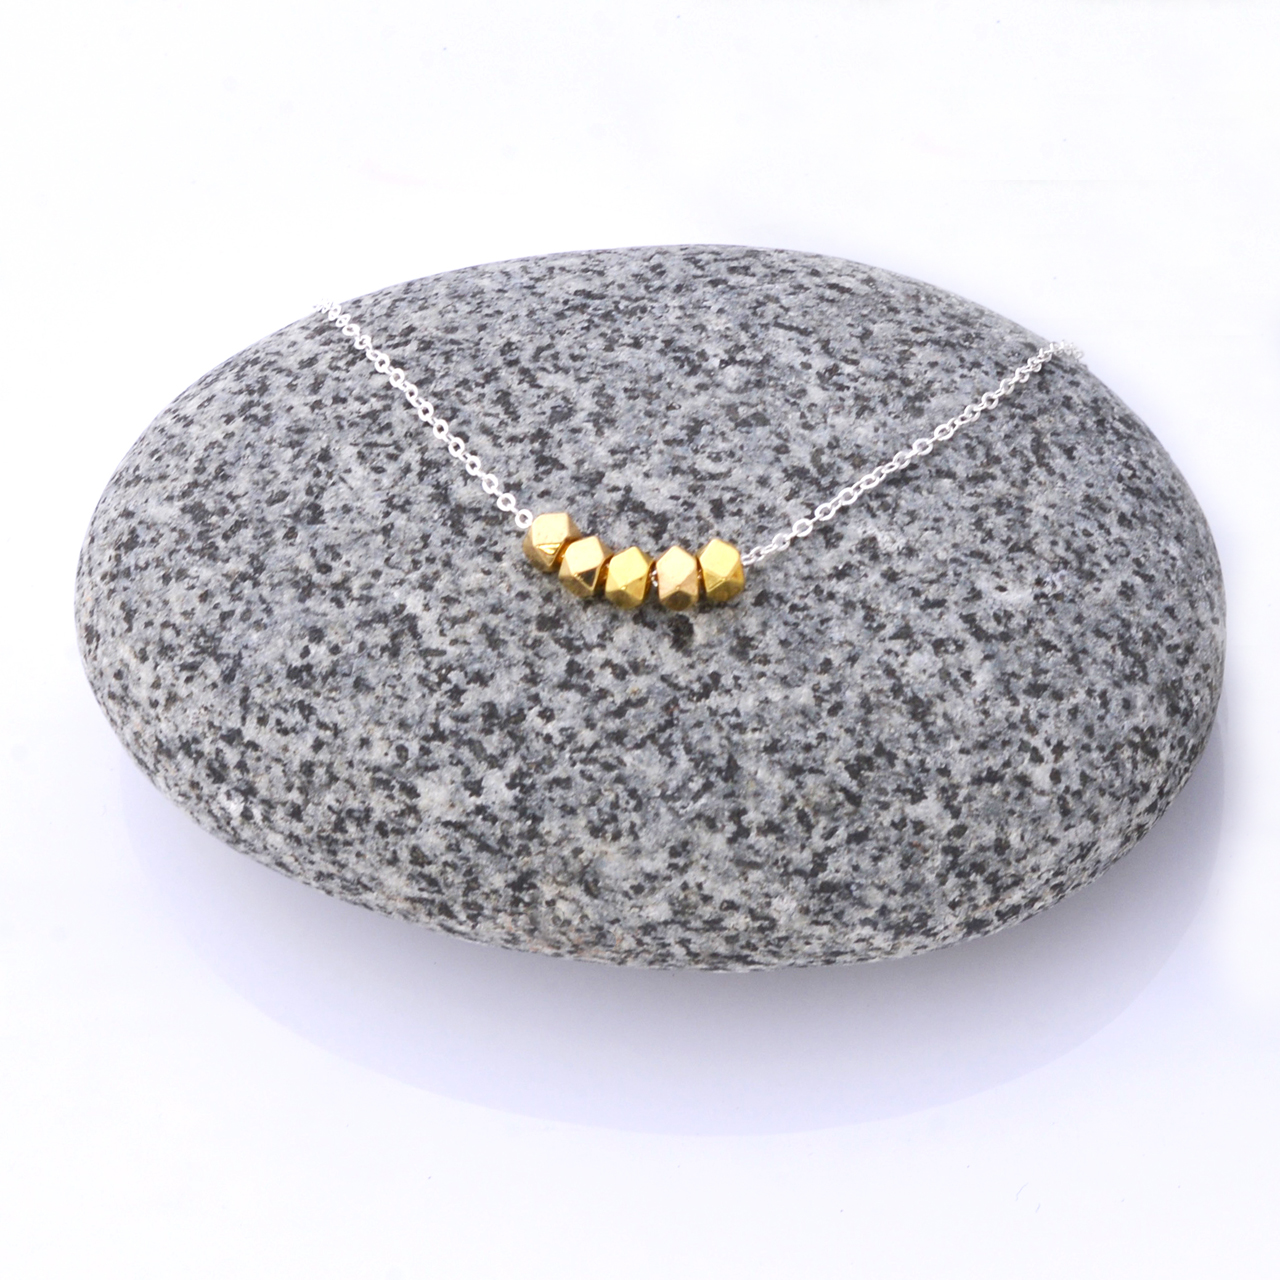 Mon Bijou Minimalist Necklace Golden Nugget Silver Chain | The Design Gift Shop